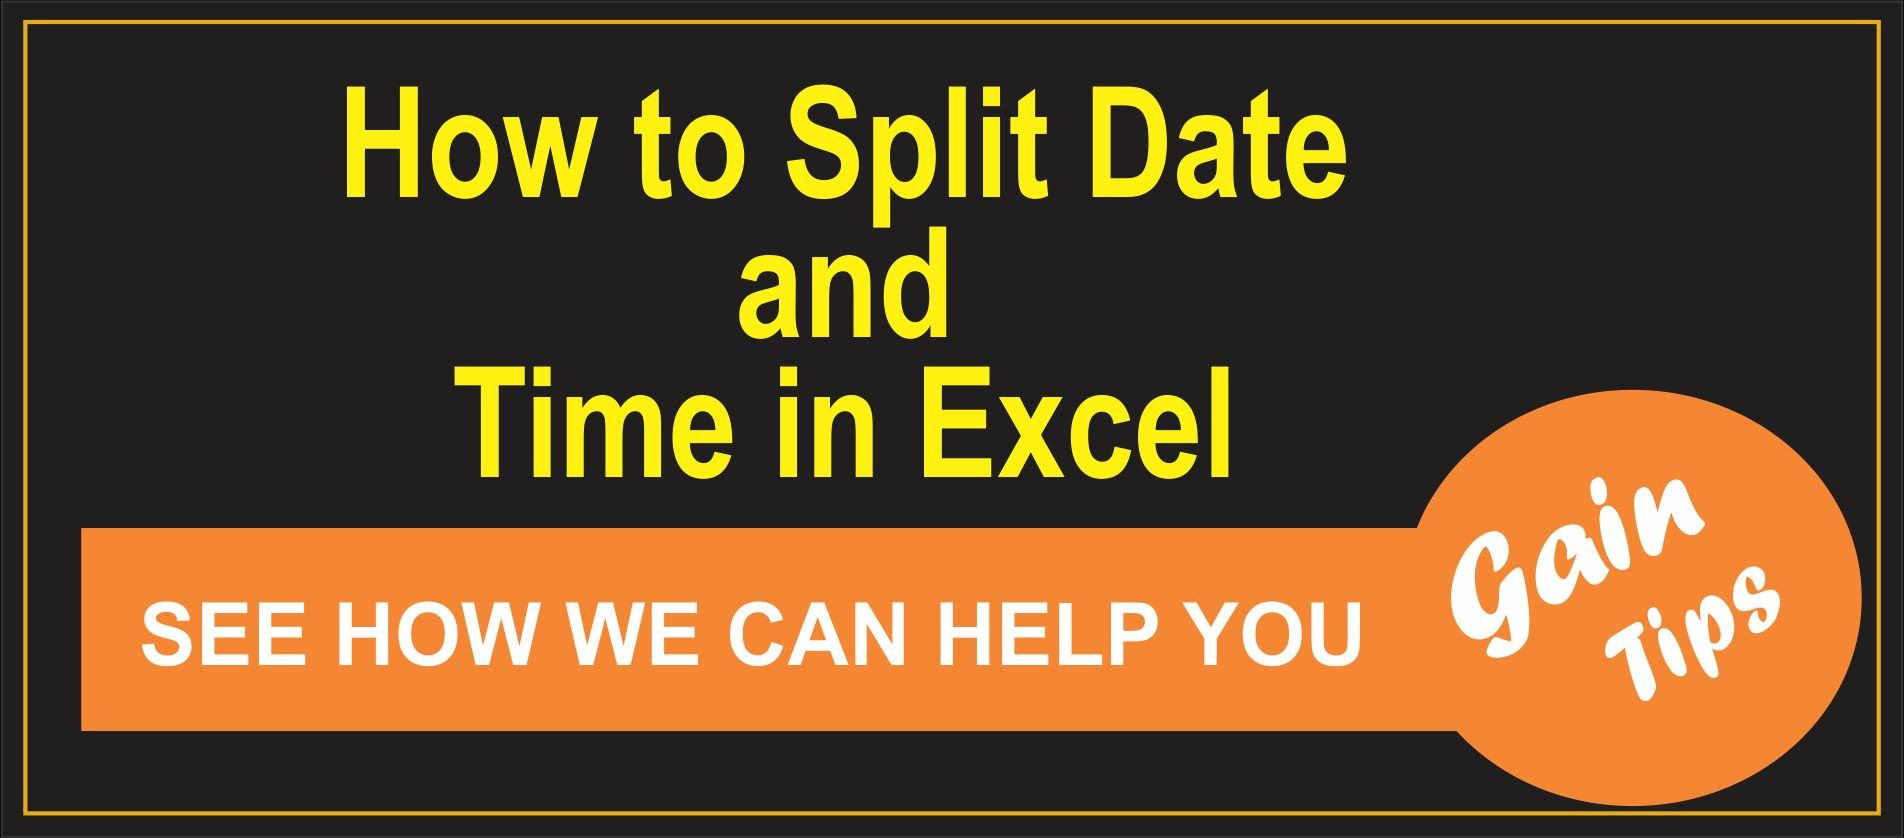 How To Split Date And Time In Excel